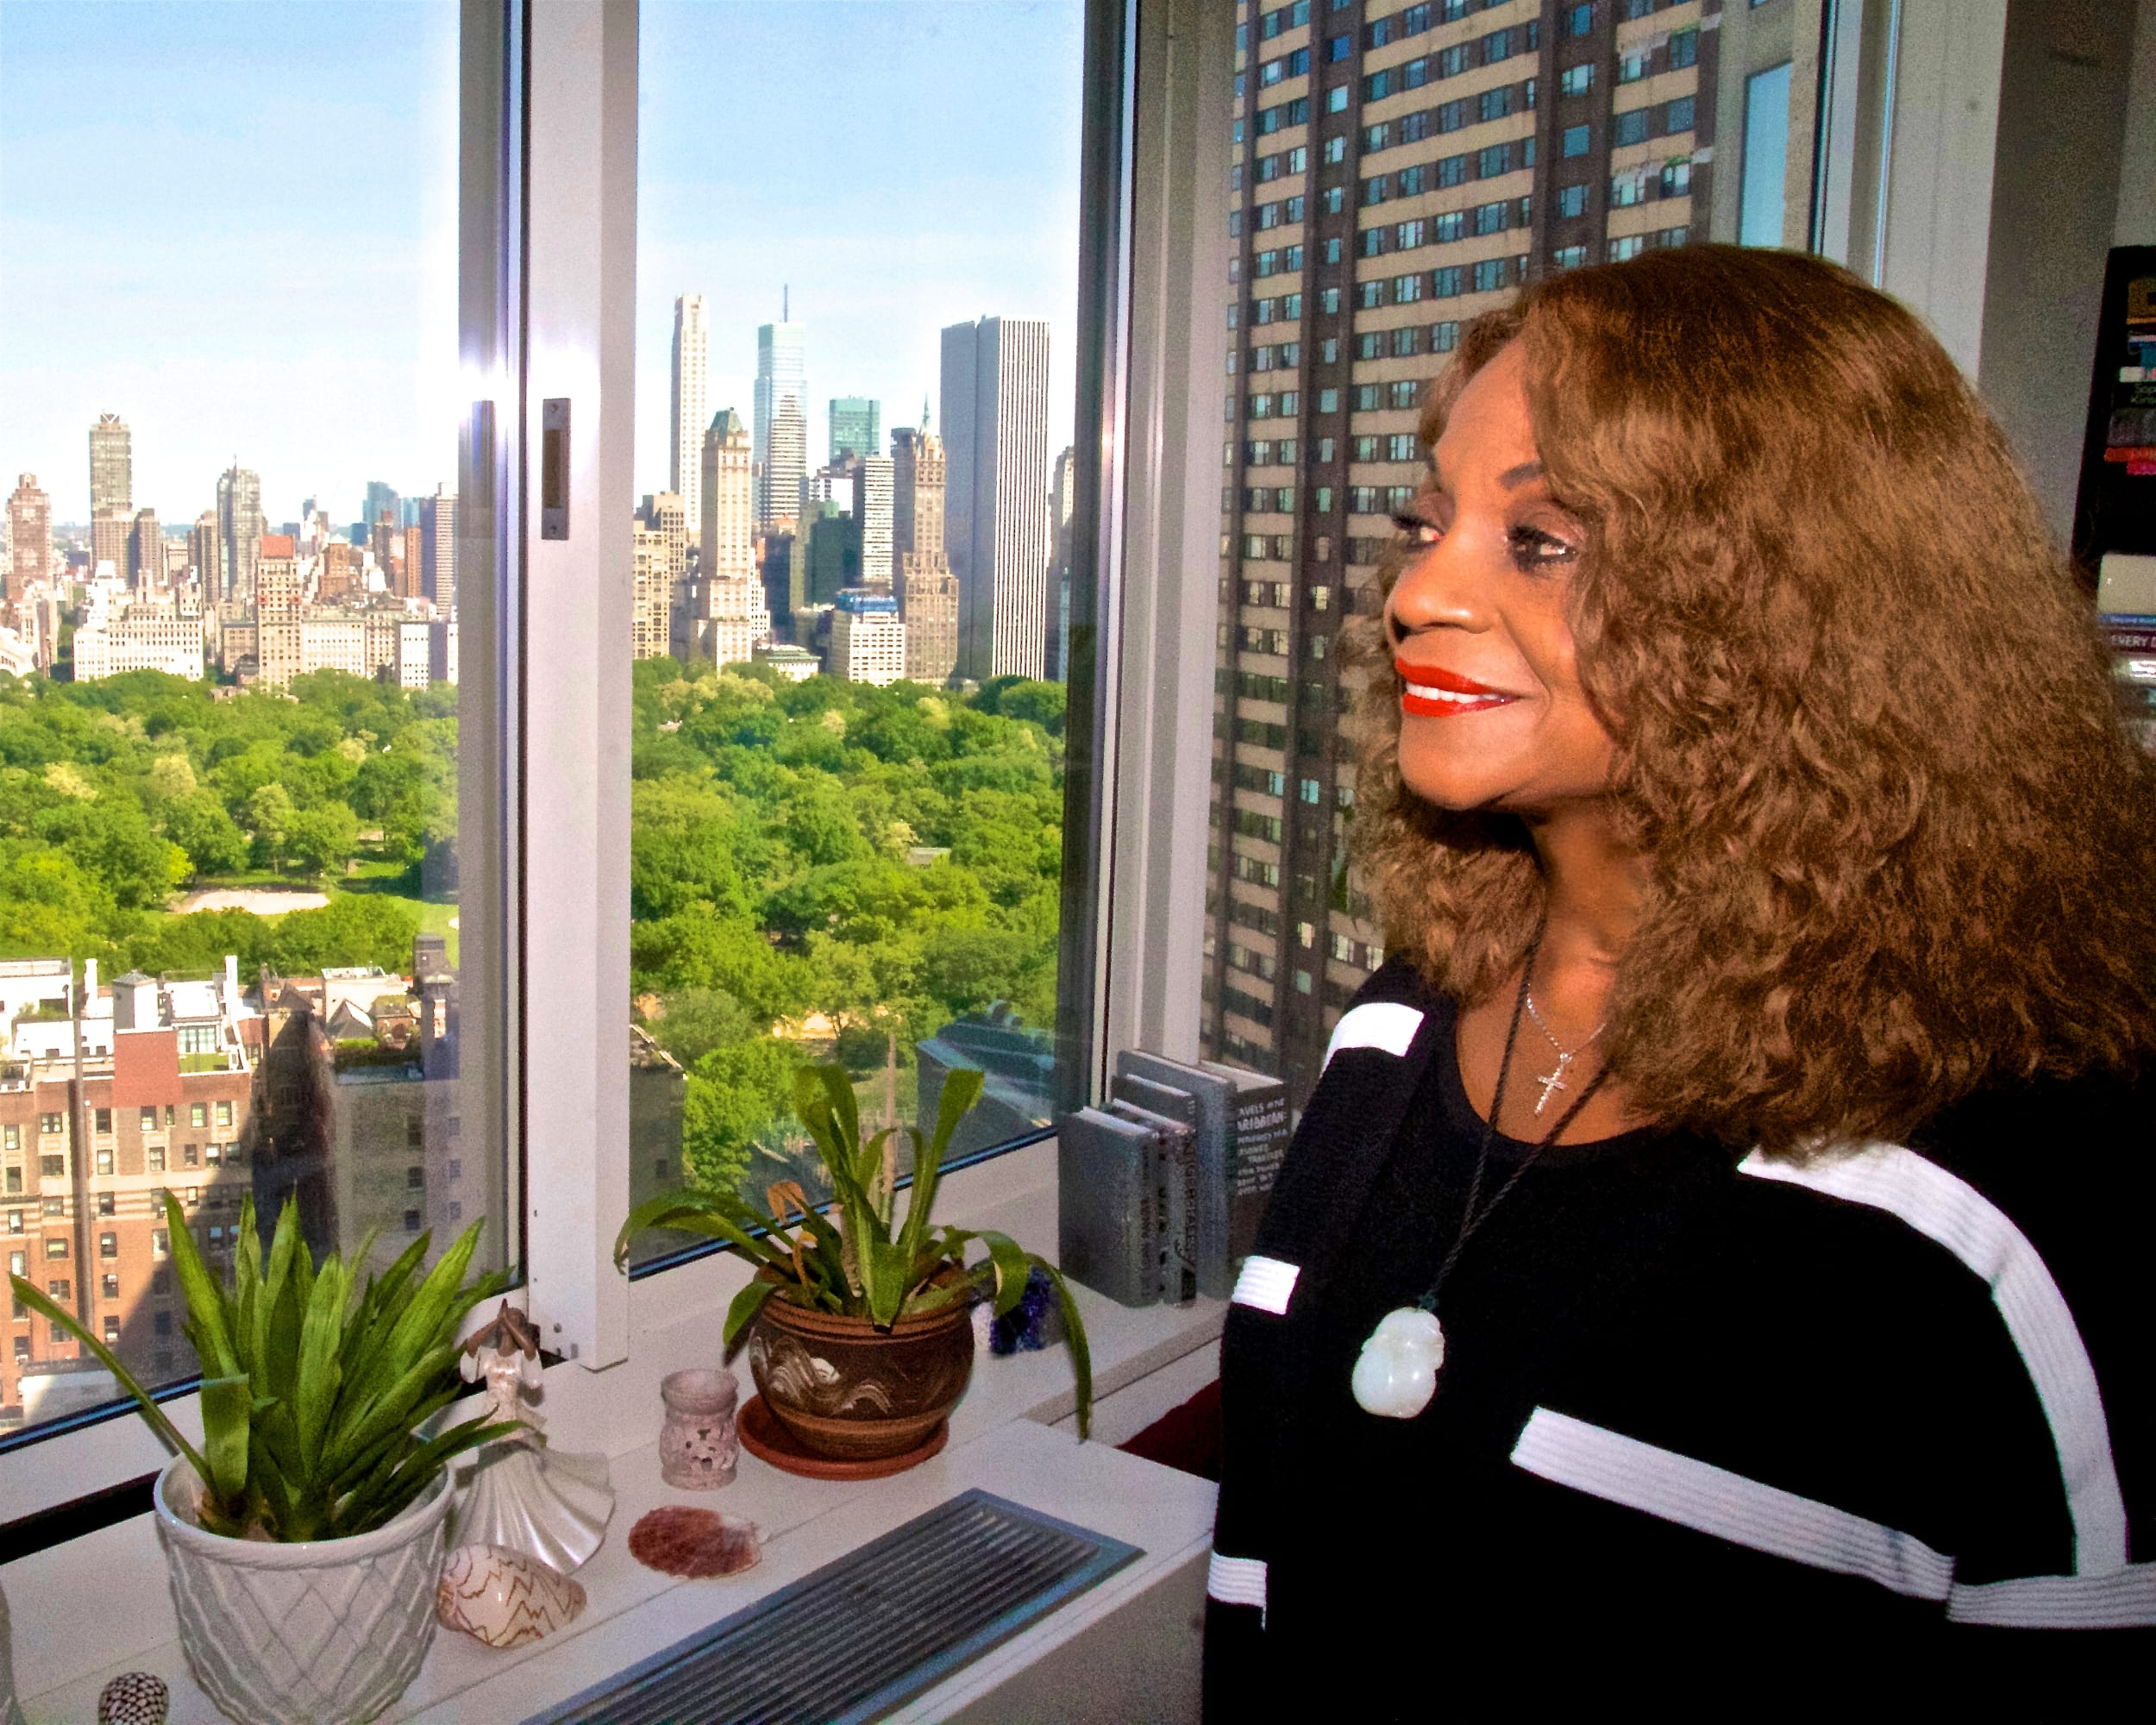 Eugenia Foxworth looking out a window at New York City Skyline